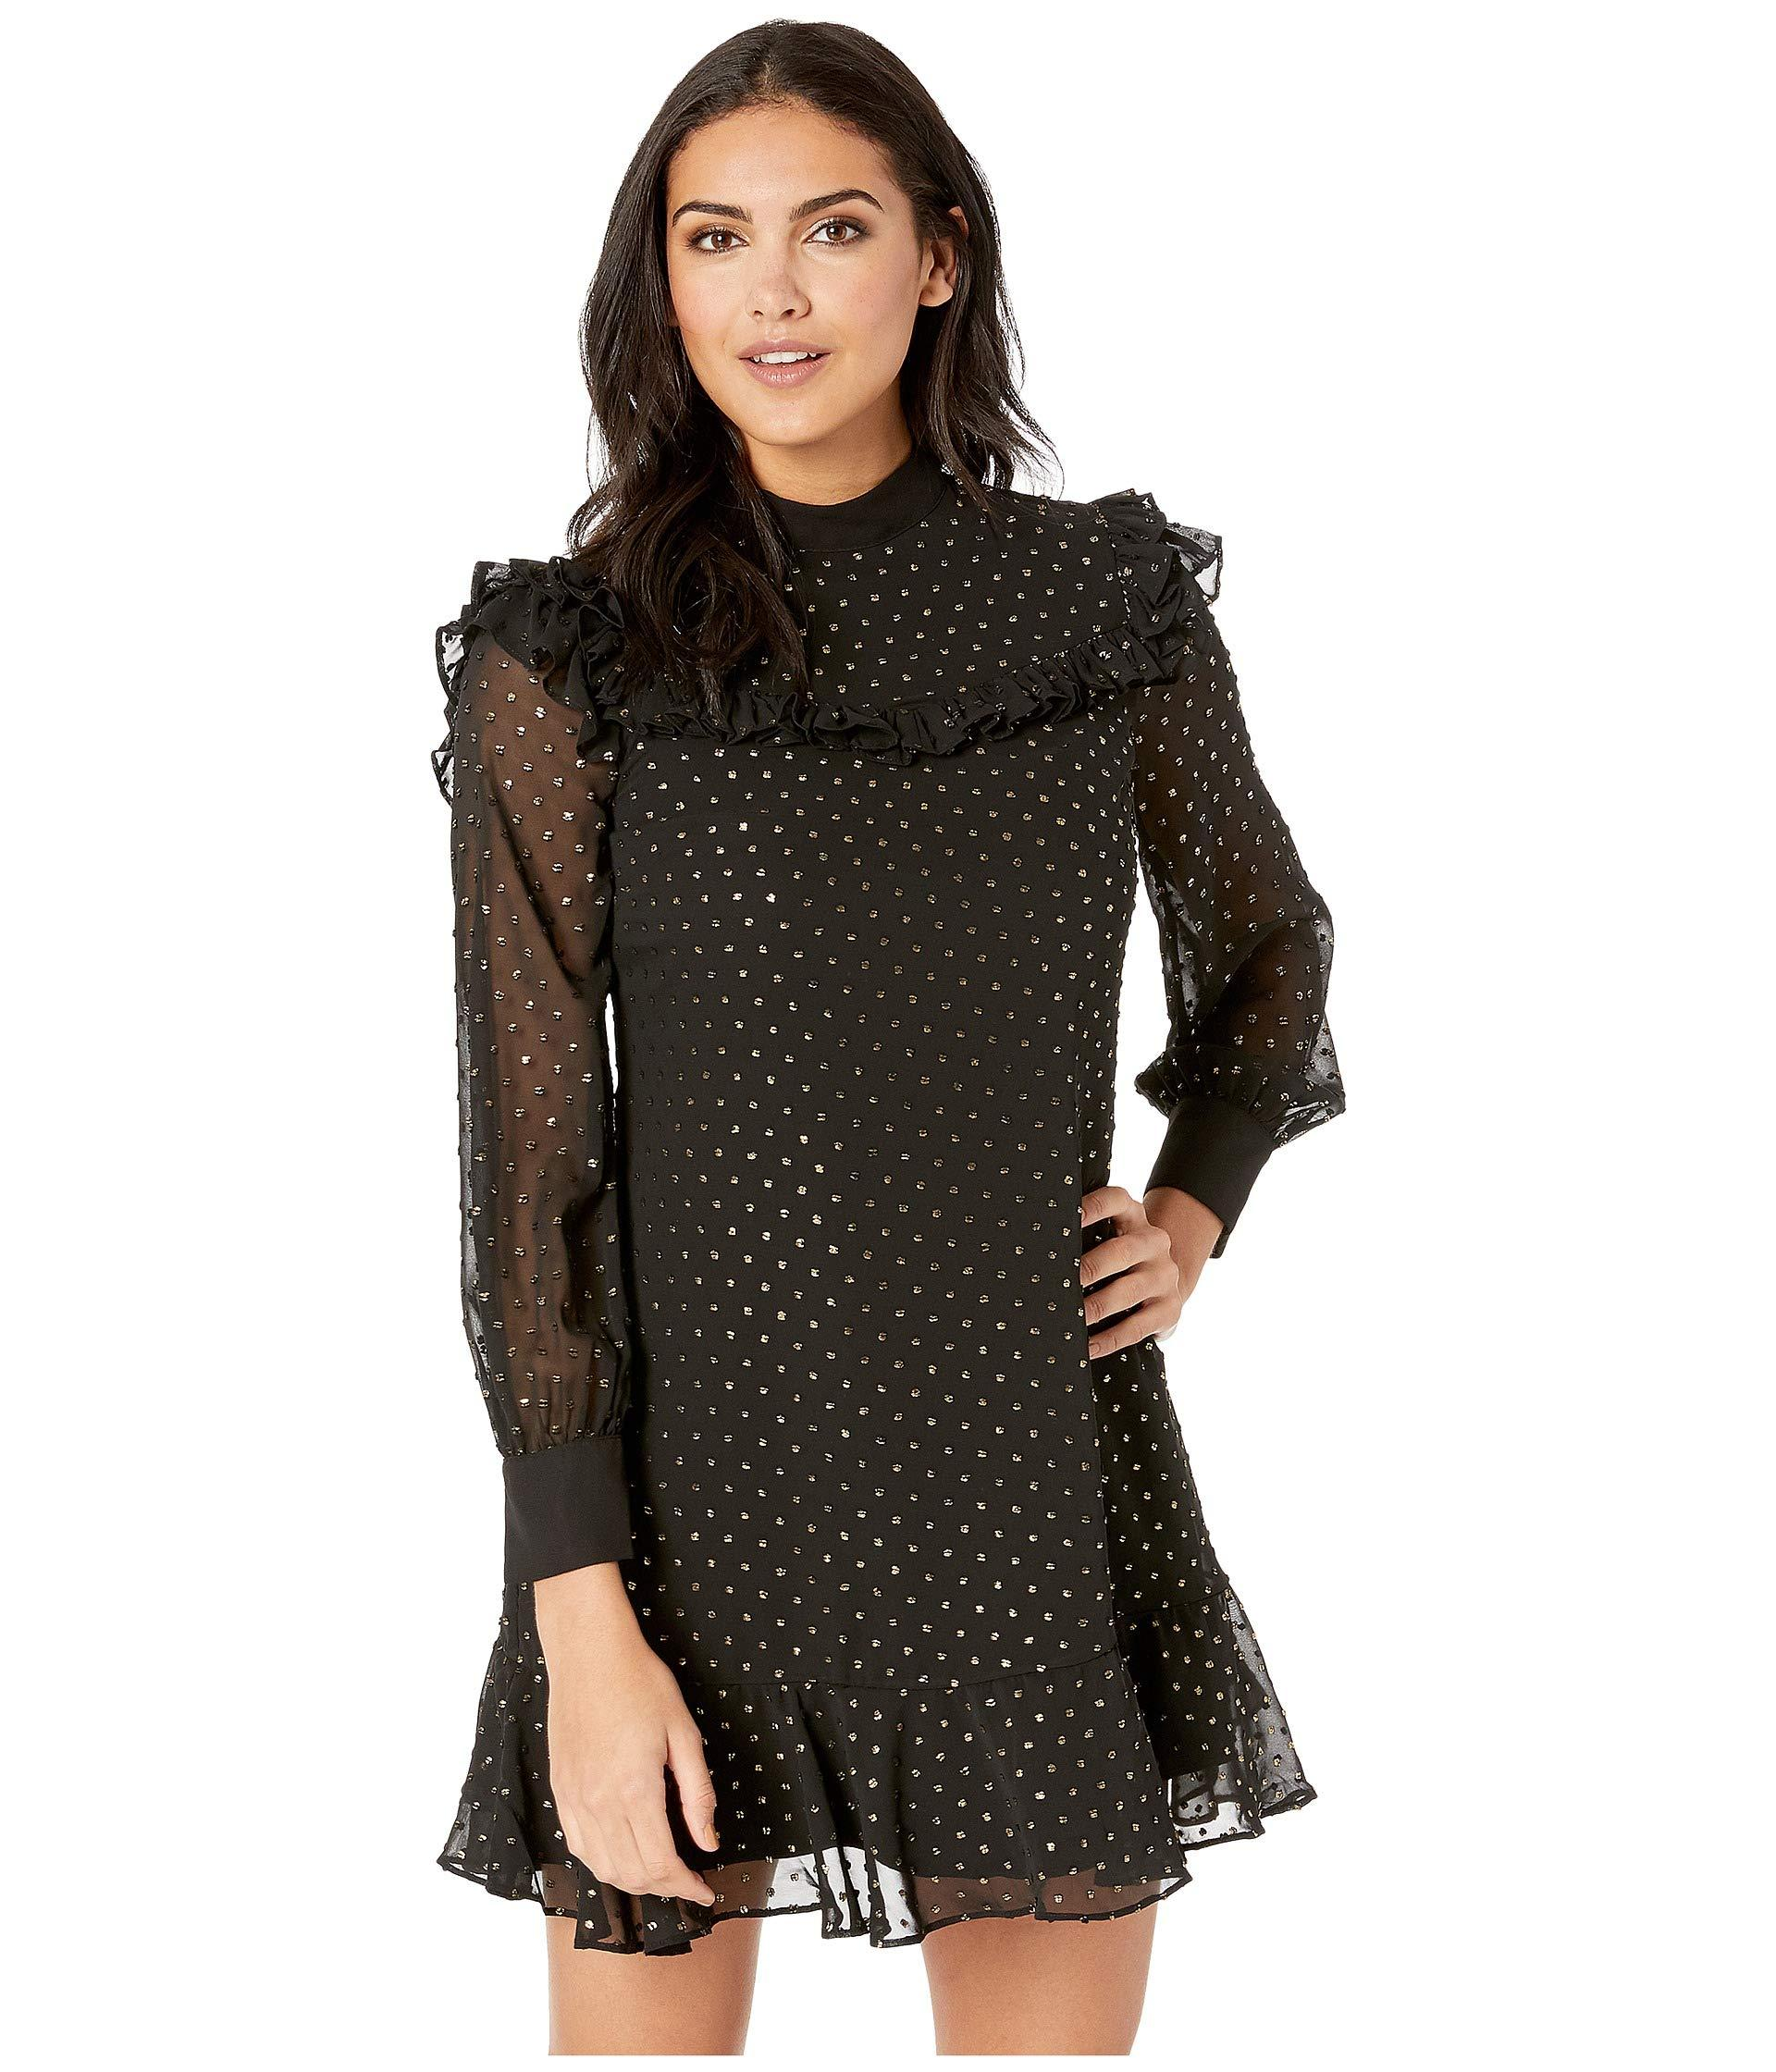 531dfcab2 Lyst - Ted Baker Joyous High Neck Ruffle Dress in Black - Save 23%